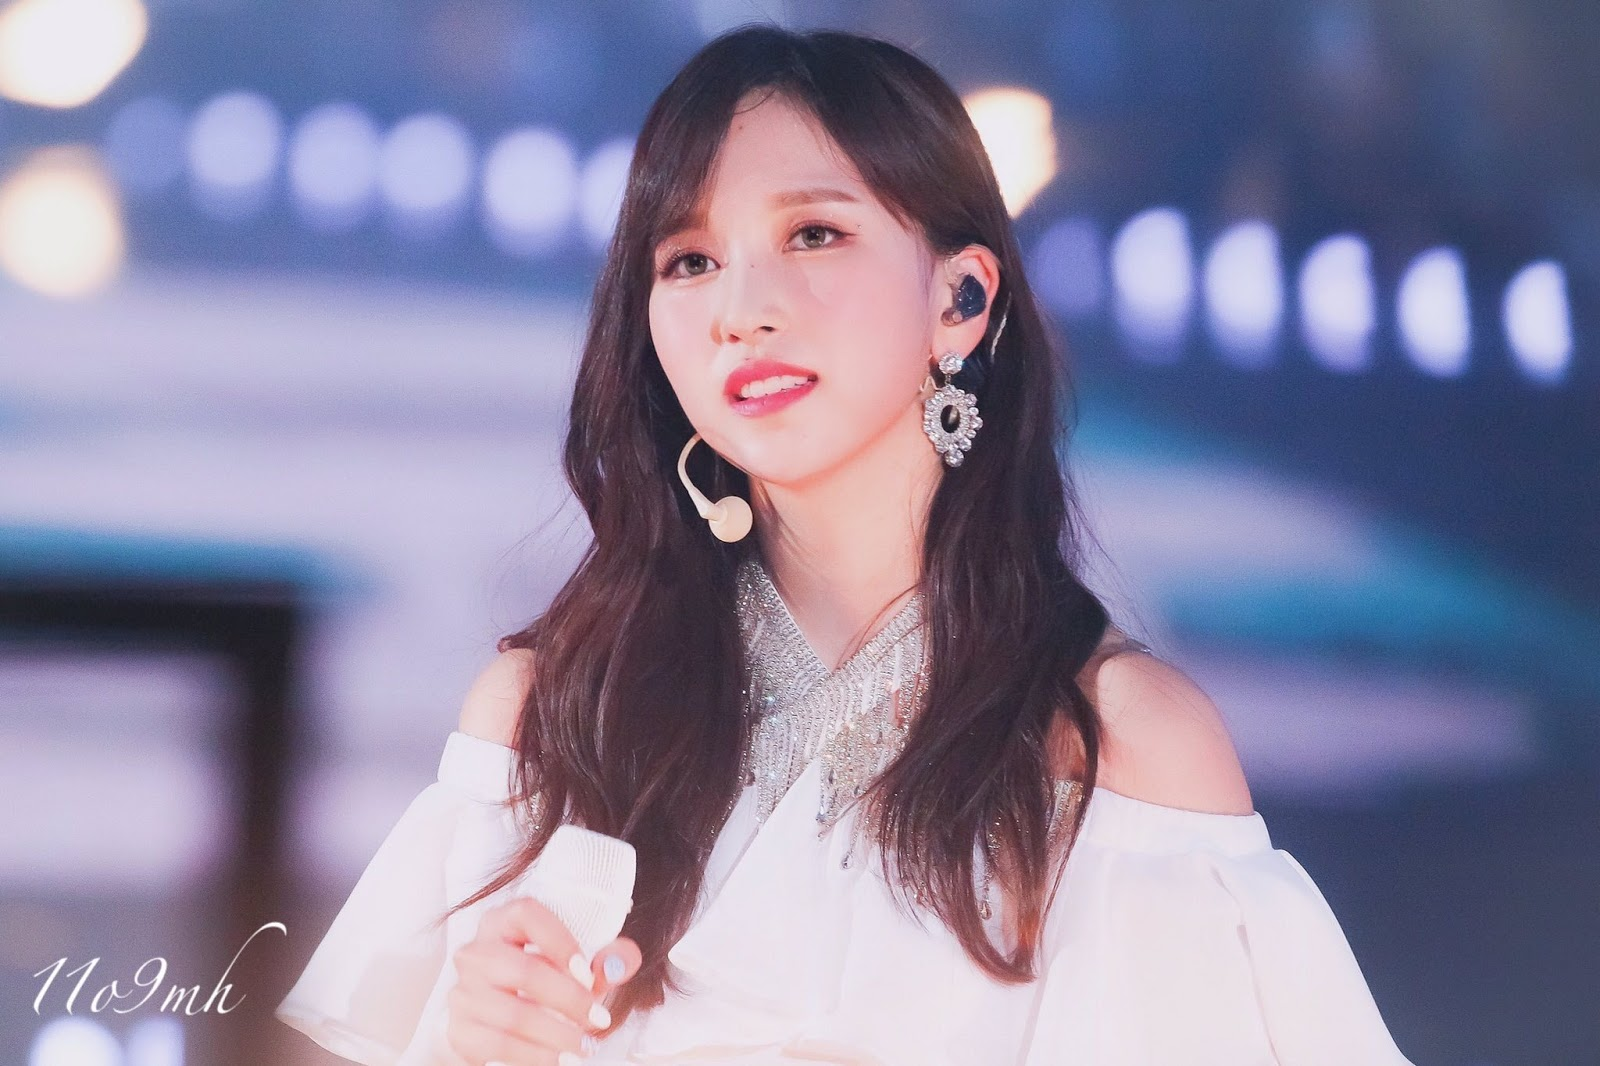 Appearing at TWICE Concert, JYP Entertainment Updates Mina's Health Conditions